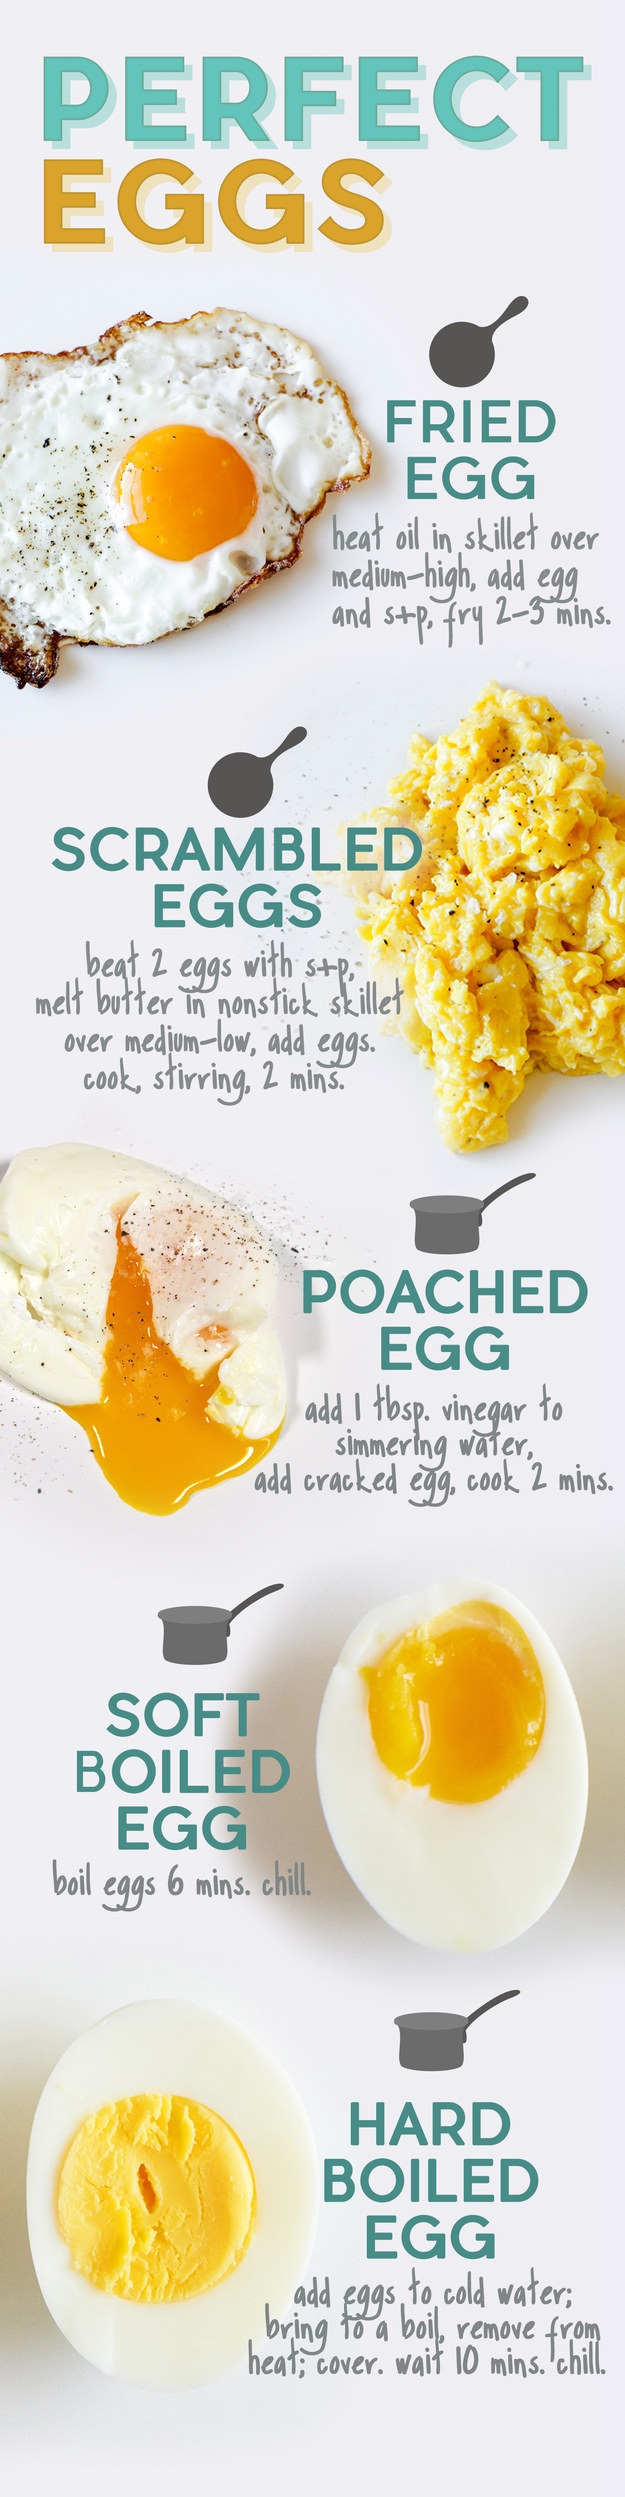 How-To-Cook-Eggs-.jpg